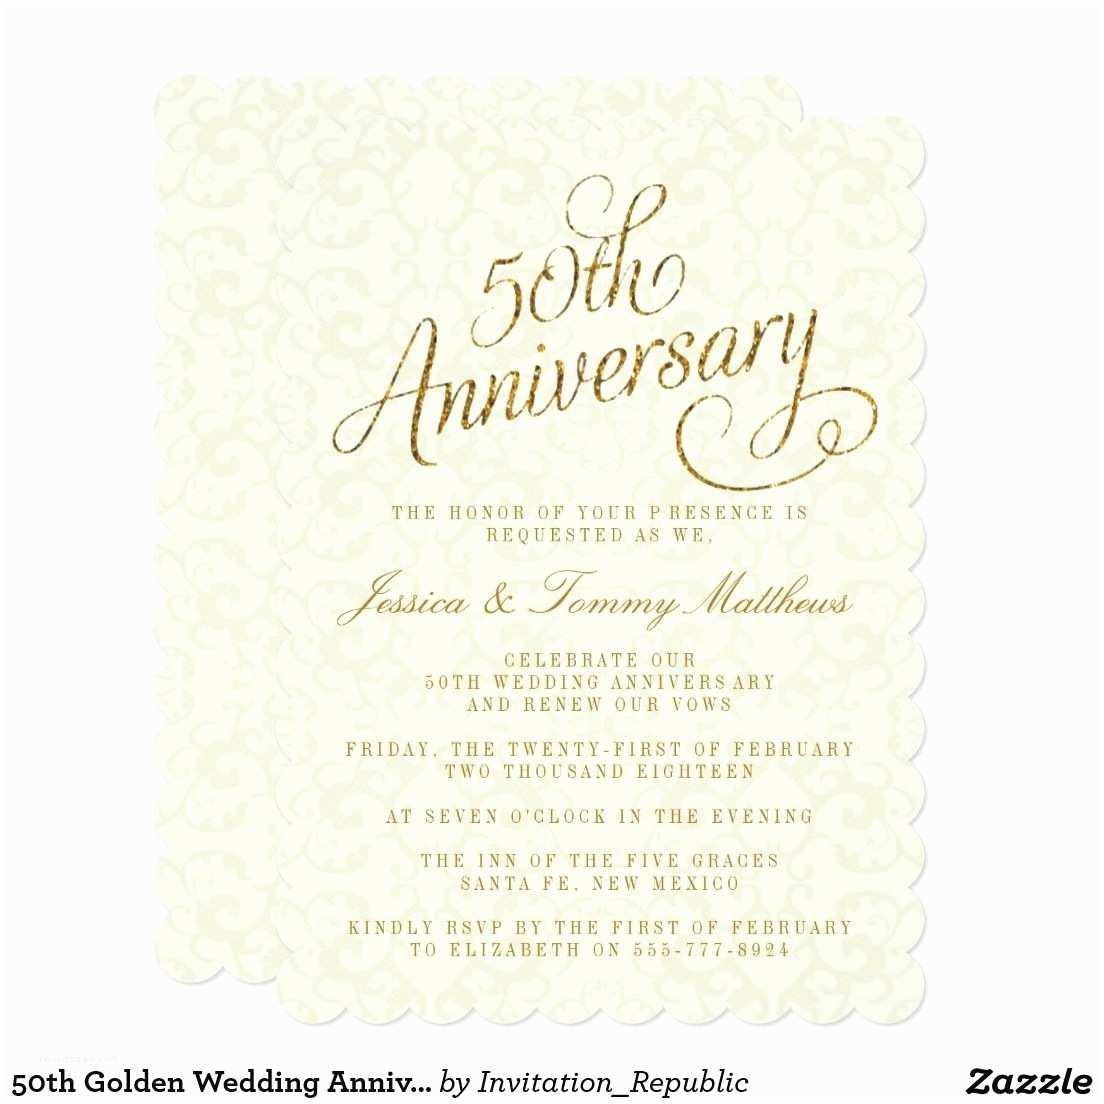 Golden Wedding Anniversary Invitations 50th Golden Wedding Anniversary Invitations